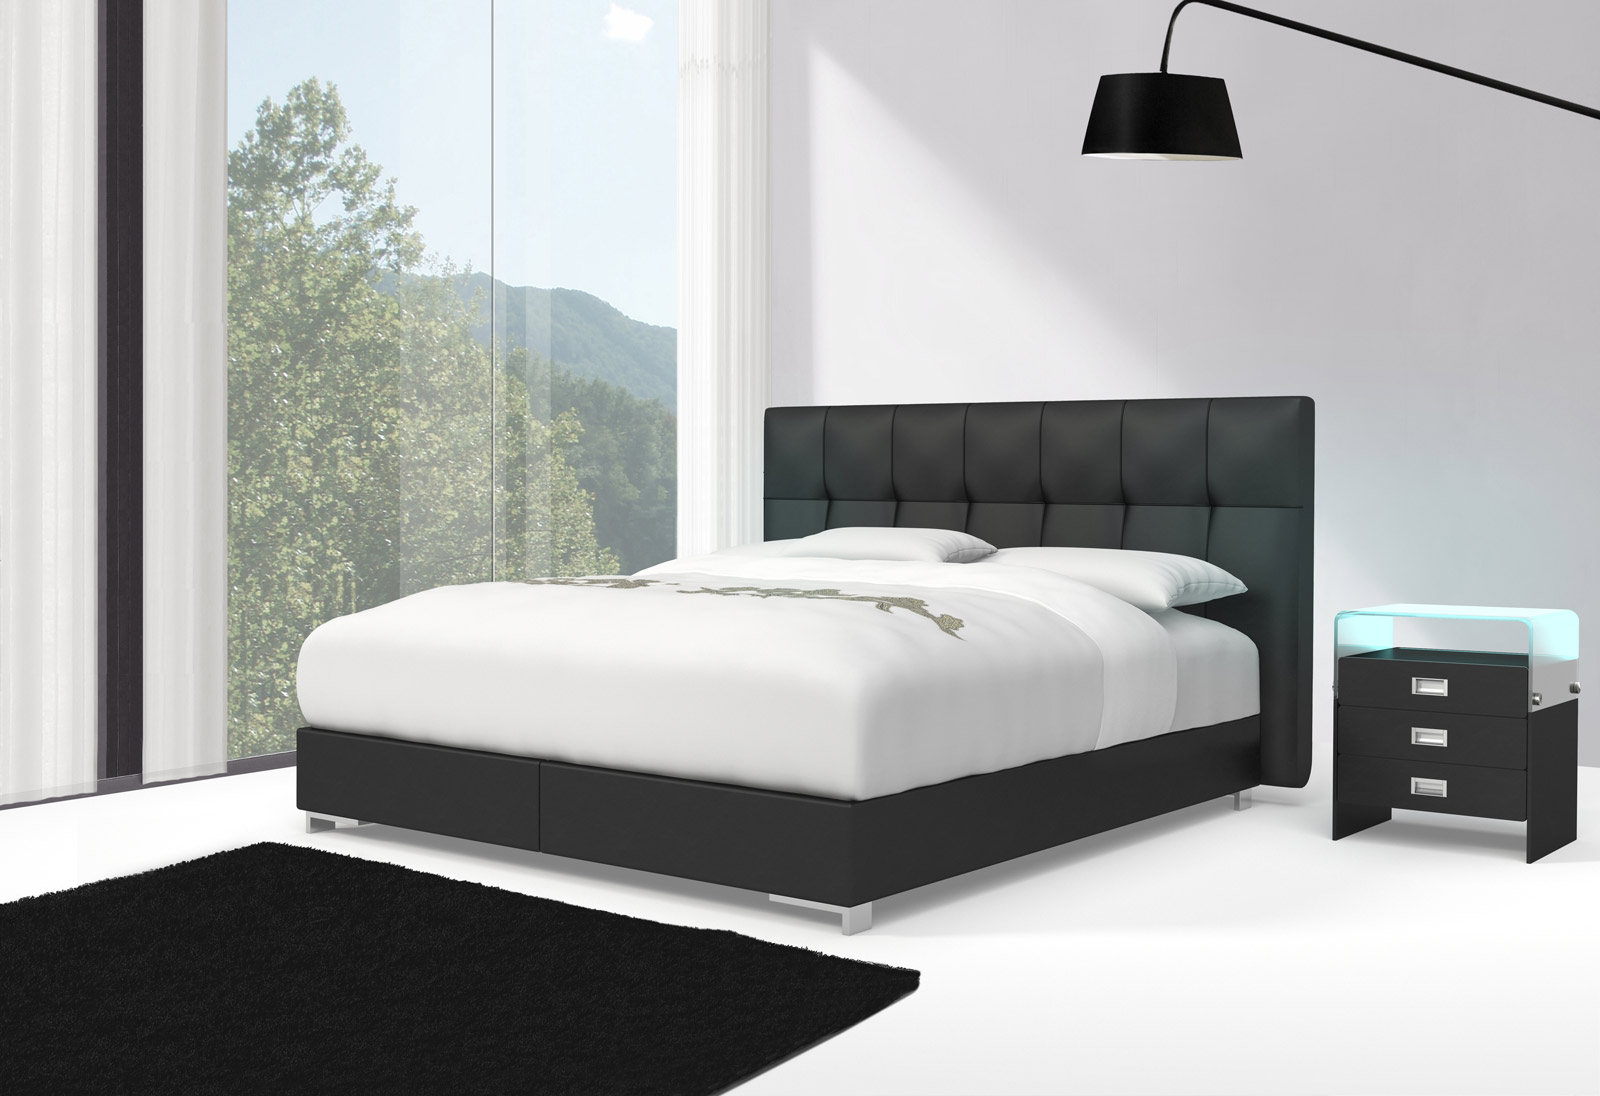 sam design boxspringbett 140 x 200 cm schwarz zarah. Black Bedroom Furniture Sets. Home Design Ideas